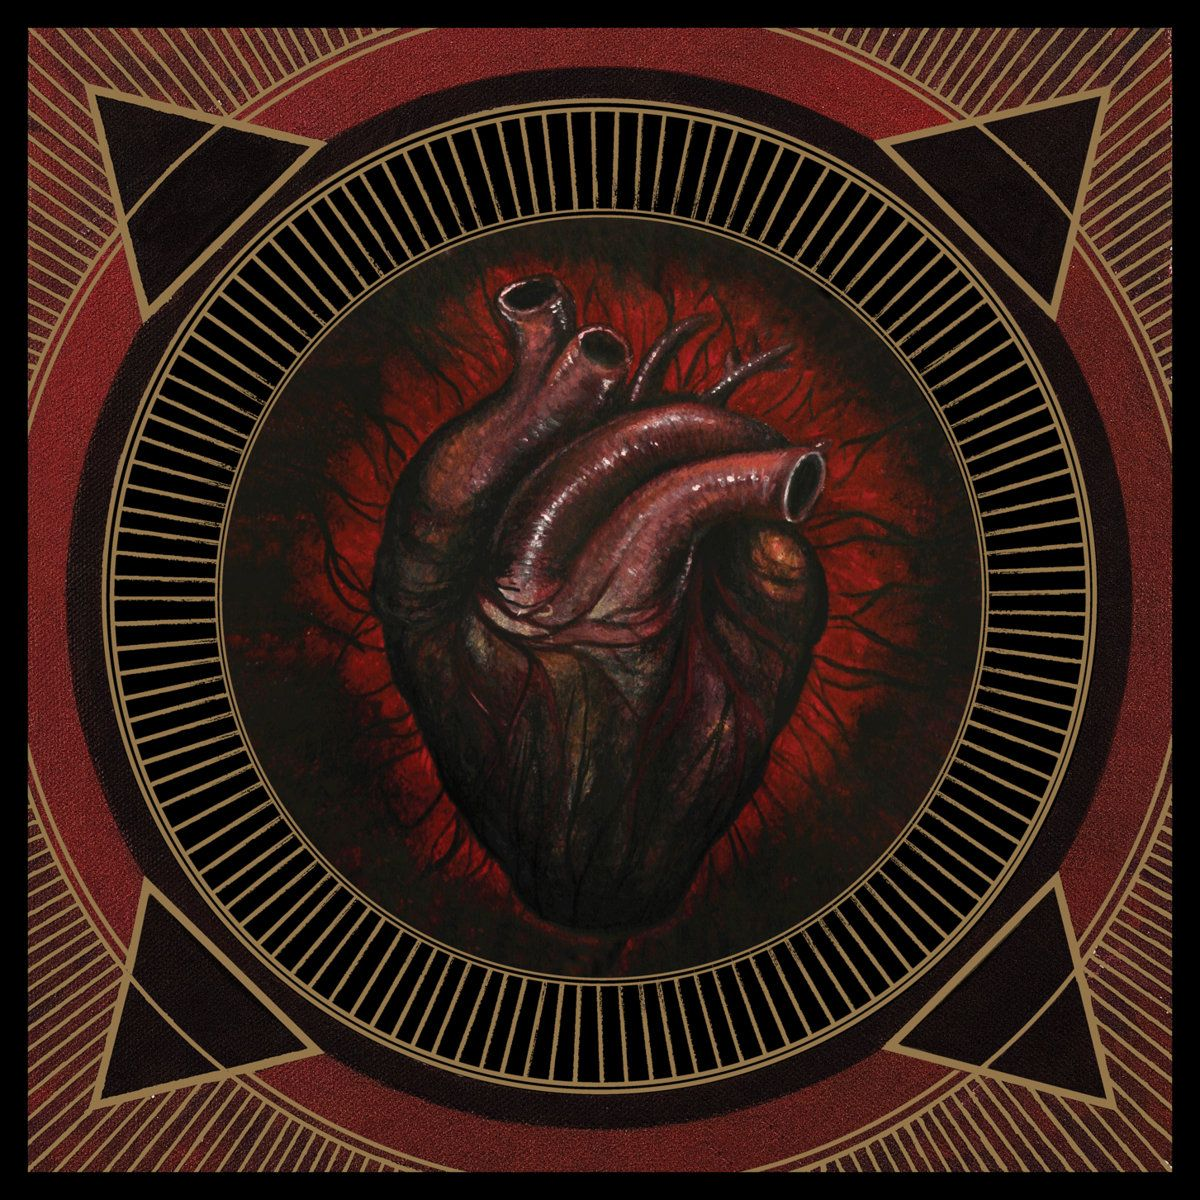 Review for Rebirth of Nefast - Tabernaculum